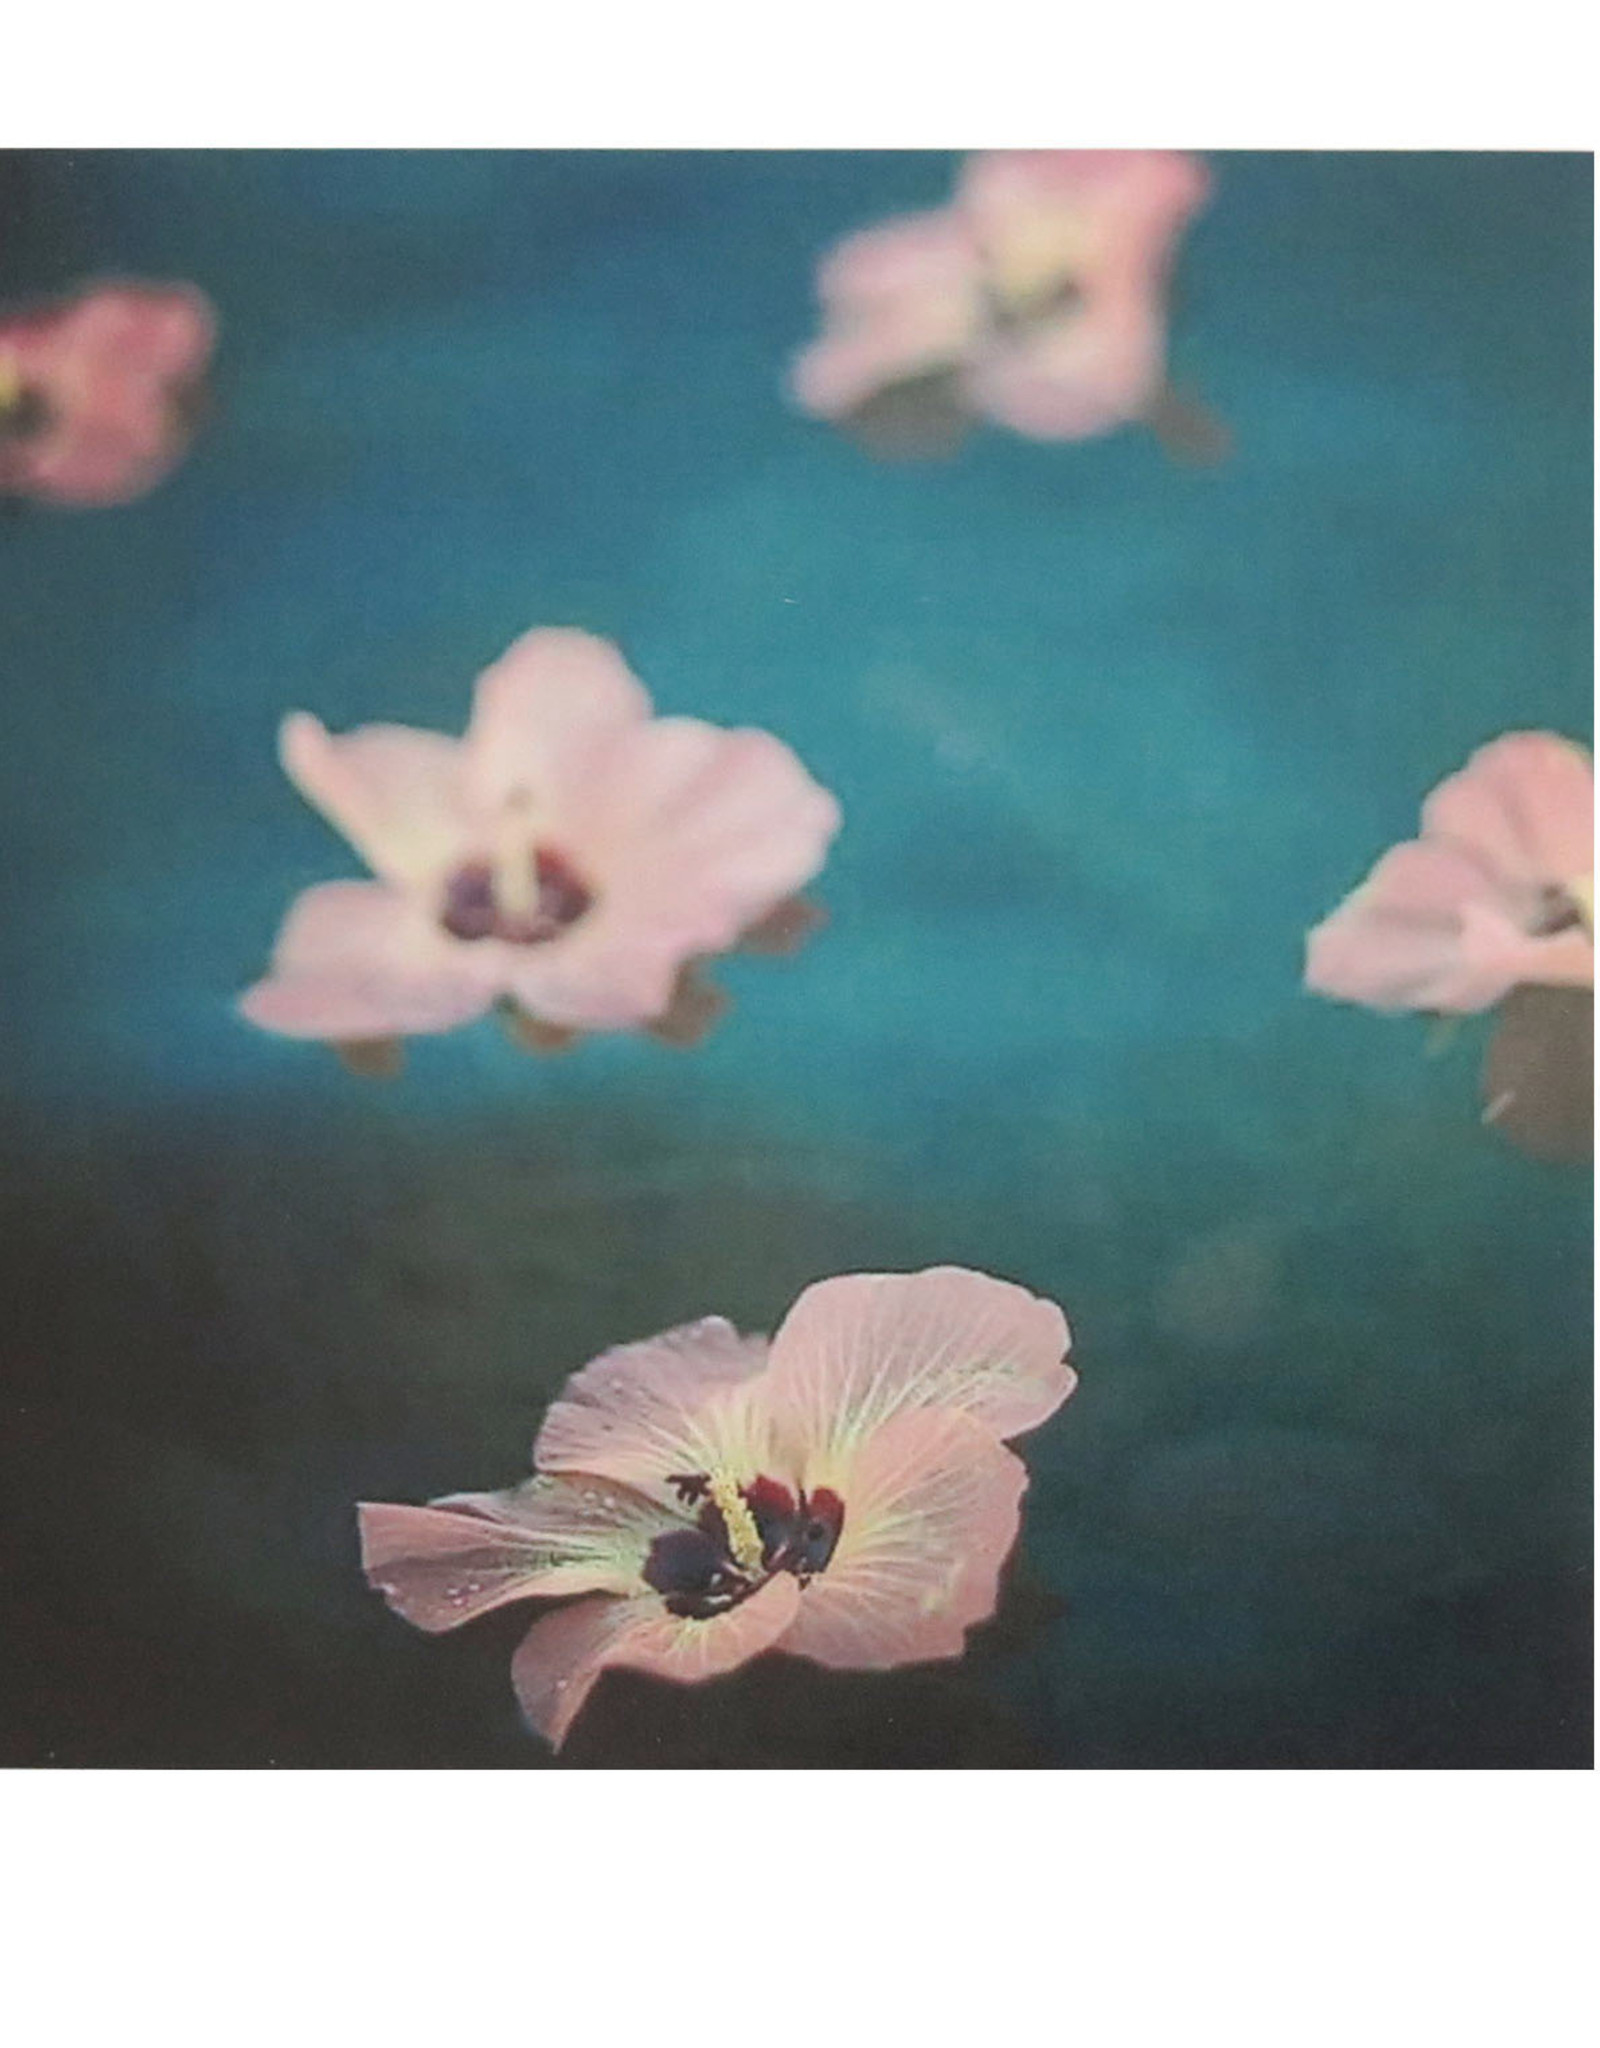 4x4 Tropical Flower Photo #2 by Larissa Rolley